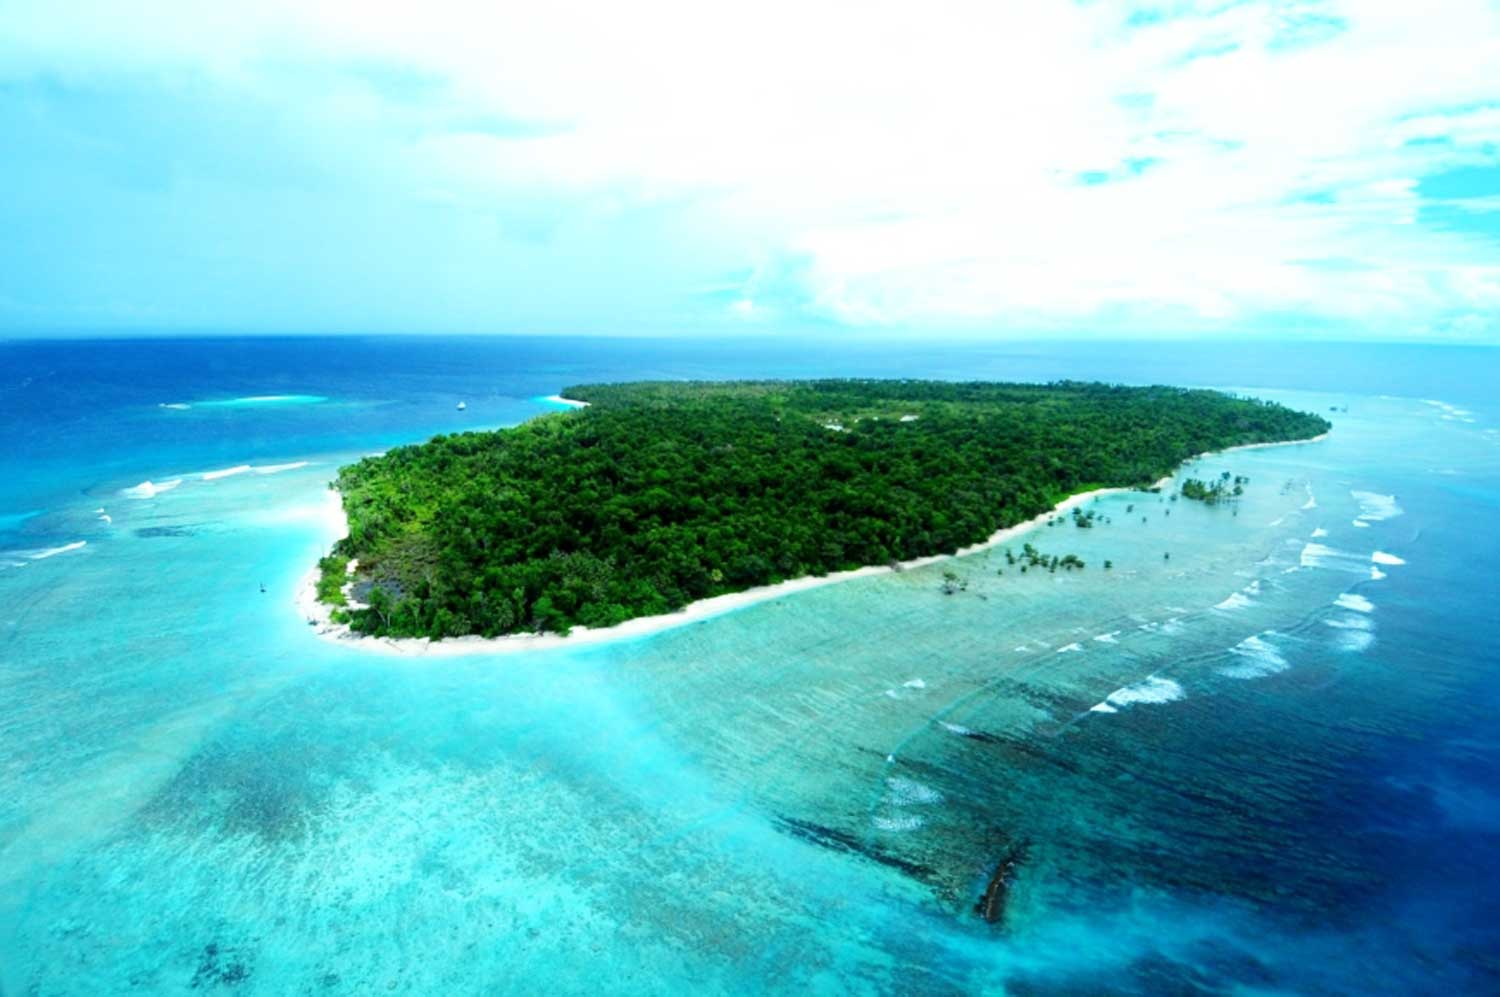 Wavepark Mentawai Indonesia - Screw Them All - Blog